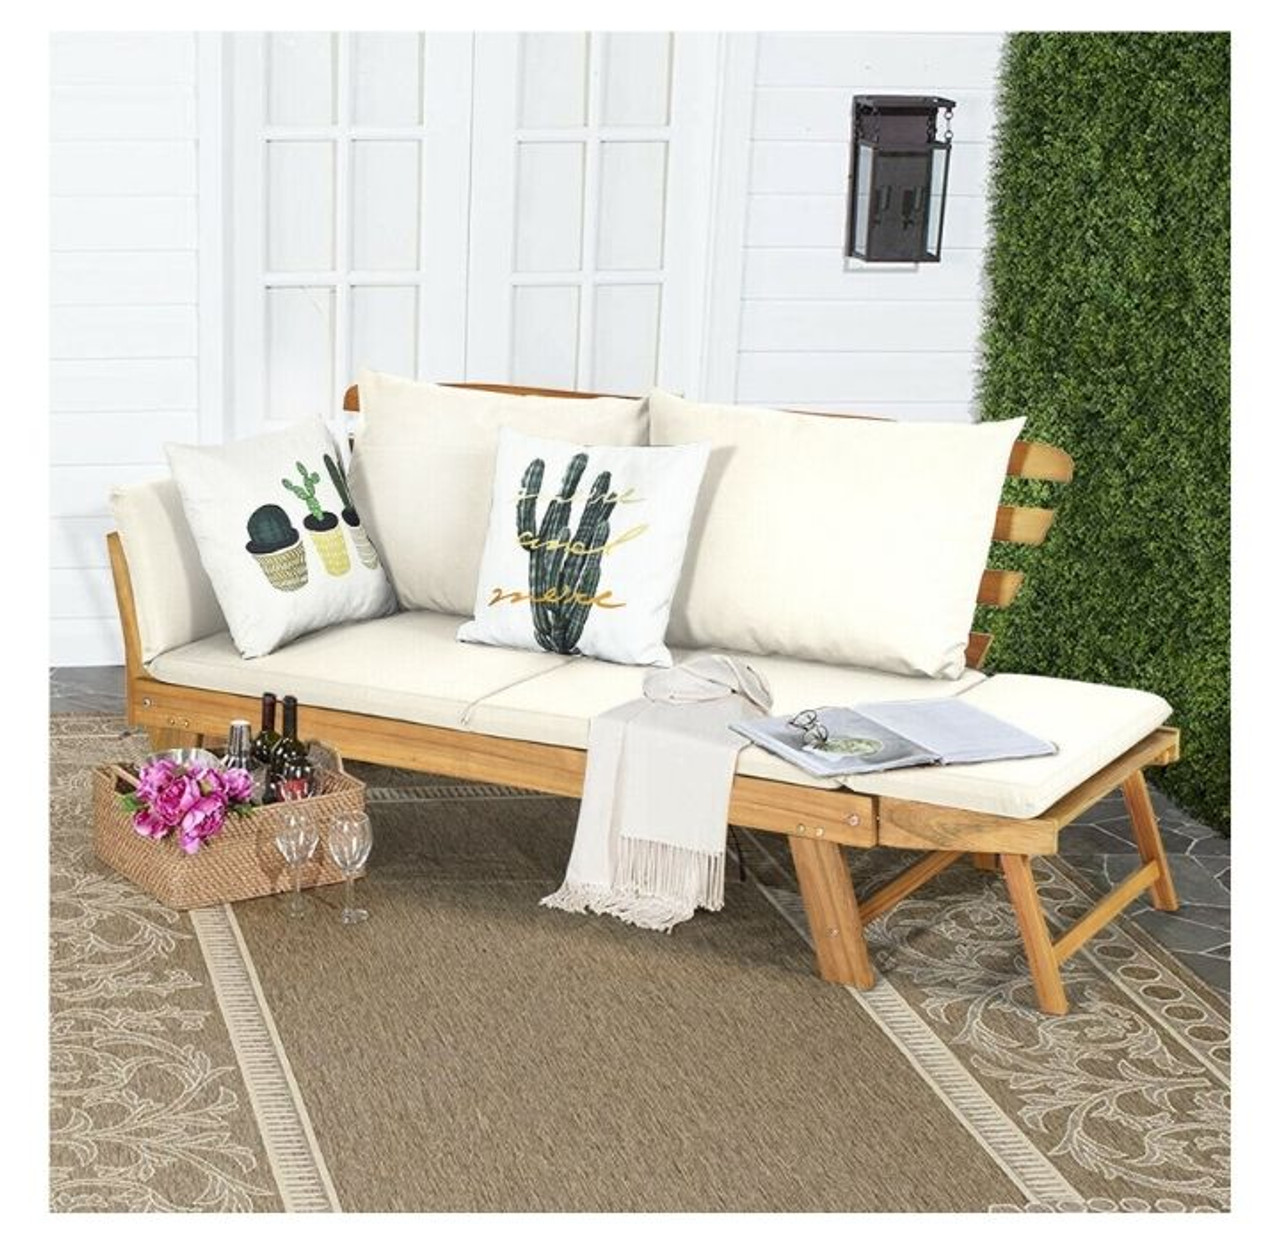 Convertible Wood Outdoor Sofa/Daybed! 4.99 (REG 9.99) + Free Shipping at Until Gone!